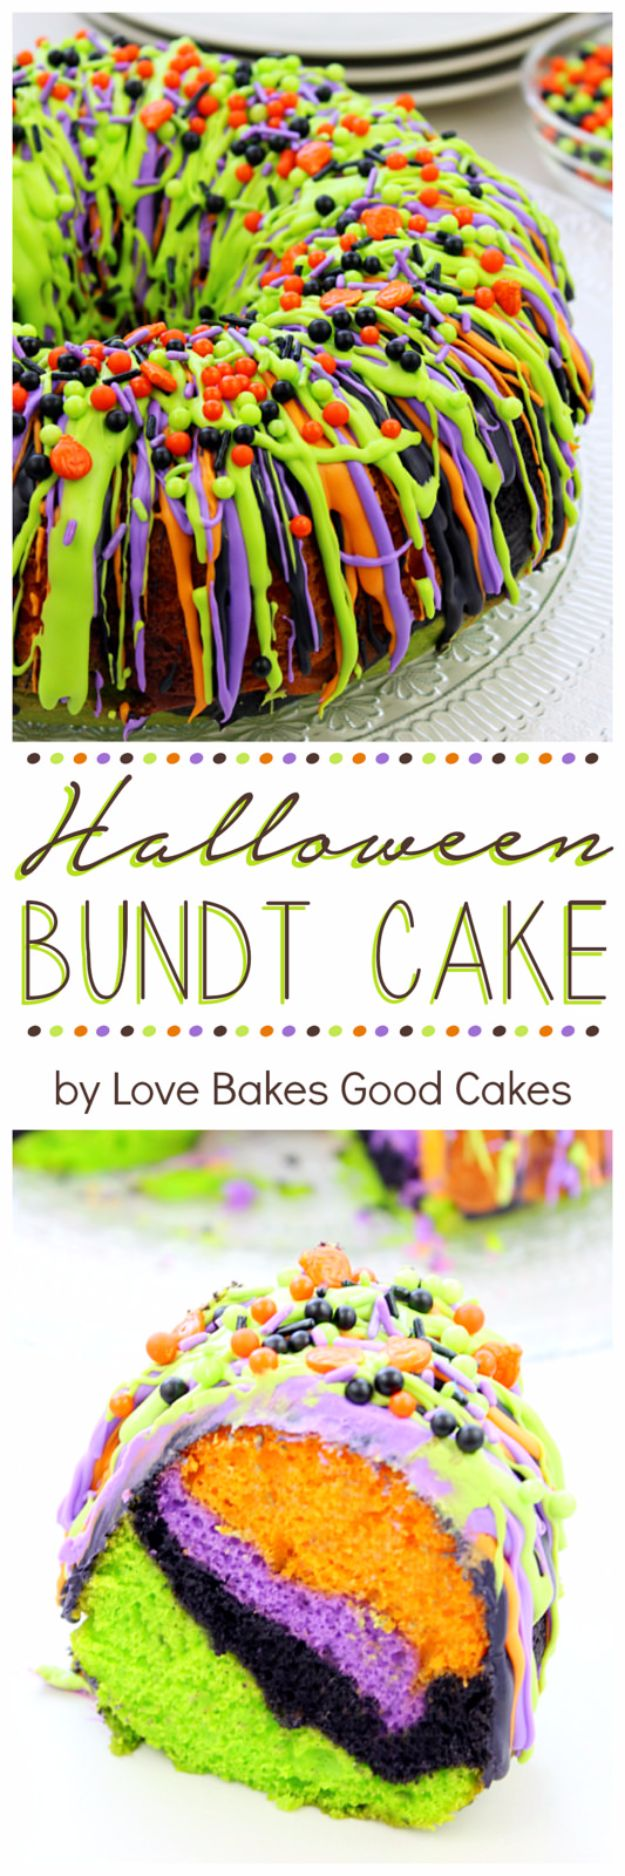 Best Halloween Party Snacks - Halloween Bundt Cake - Healthy Ideas for Kids for School, Teens and Adults - Easy and Quick Recipes and Idea for Dips, Chips, Spooky Cookies and Treats - Appetizers and Finger Foods Made With Vegetables, No Candy, Cheap Food, Scary DIY Party Foods With Step by Step Tutorials http://diyjoy.com/halloween-party-snacks